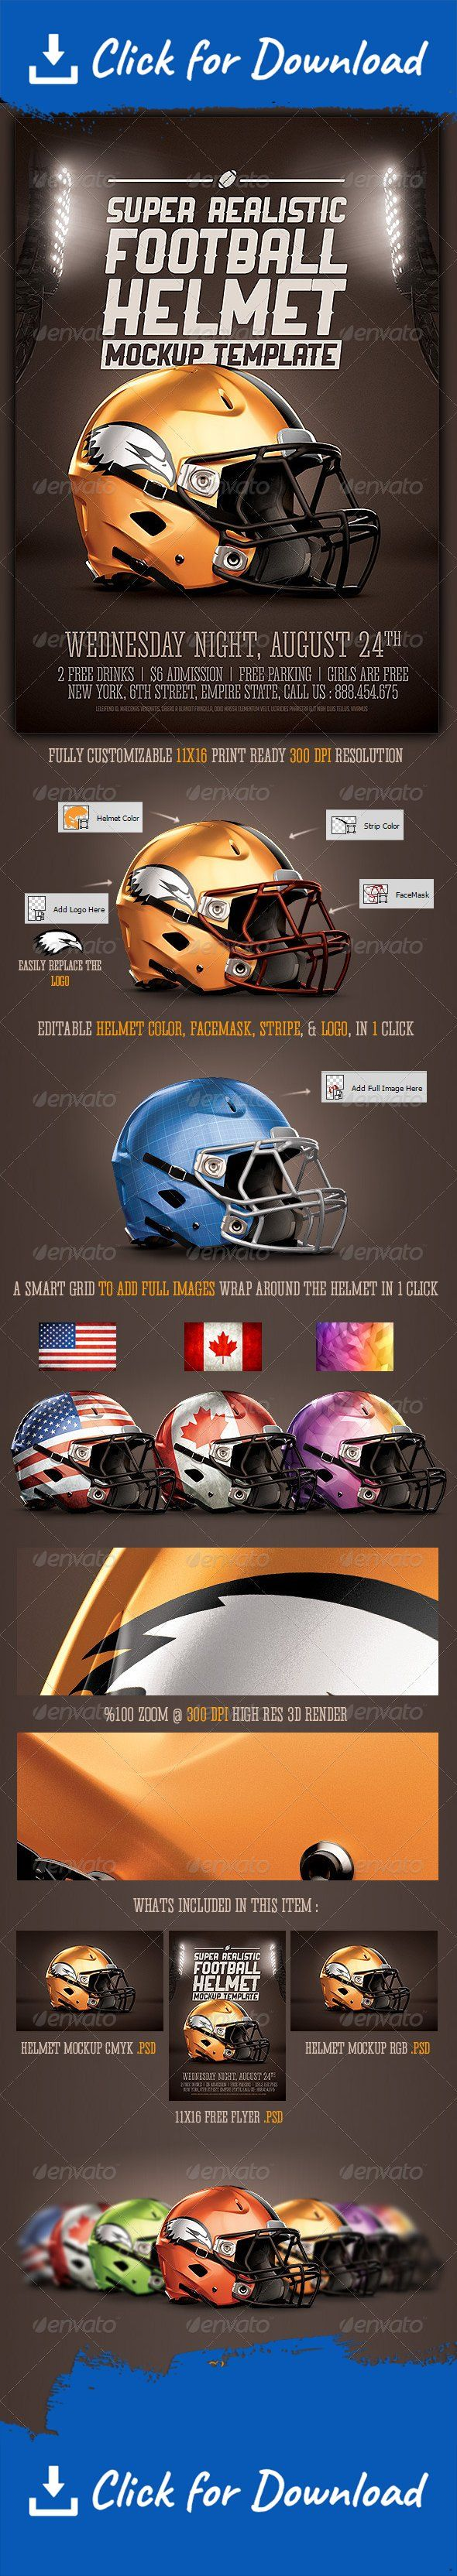 3d helmet, american football, ball, champions, championship, college, college football, fans, fantasy, fantasy football, flyer, foot, football, football helmet, game, goal, helmet, helmet mockup, league, monday night football, olympics, playoff, stadium, super bowl, superbowl, Superbowl Flyer, tournament, XLVIII                            	  Please dont forget to Rate          	A Premium Football helmet mockup with a free flyer template, in super high resolution at 3292×4800 pixles or…